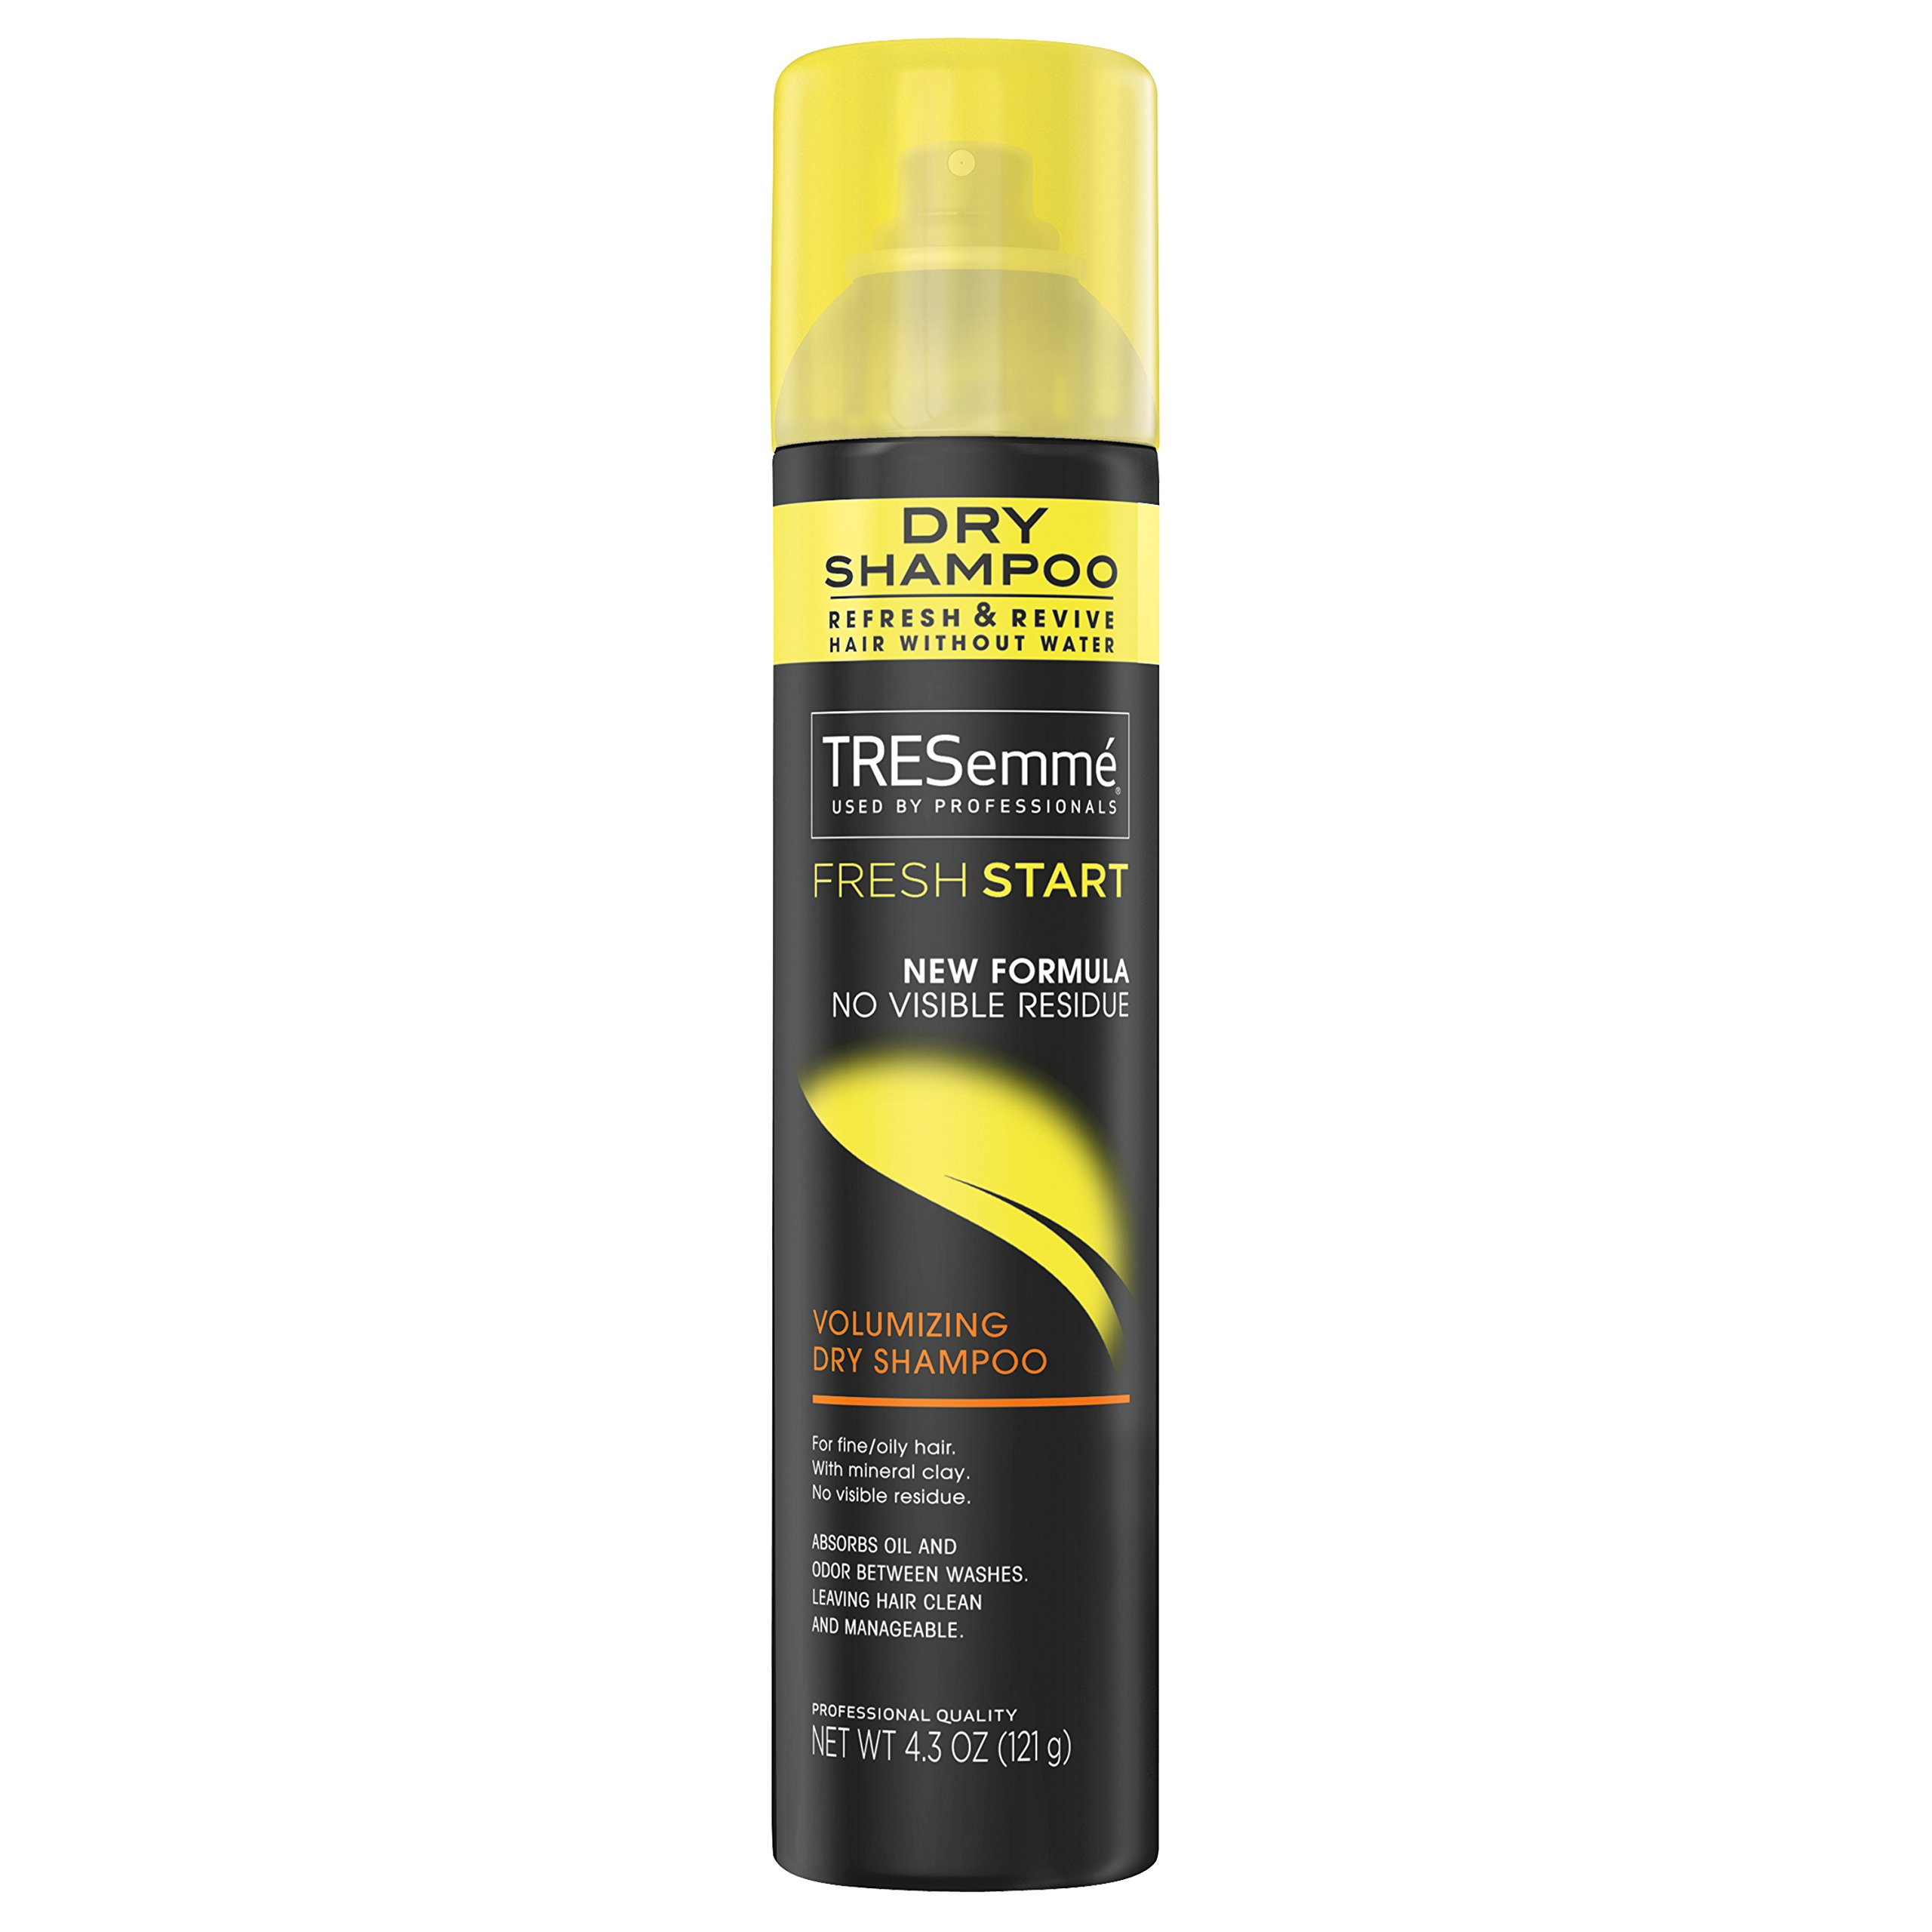 TRESemmé Fresh Start Dry Shampoo, Volumizing 4.3 oz